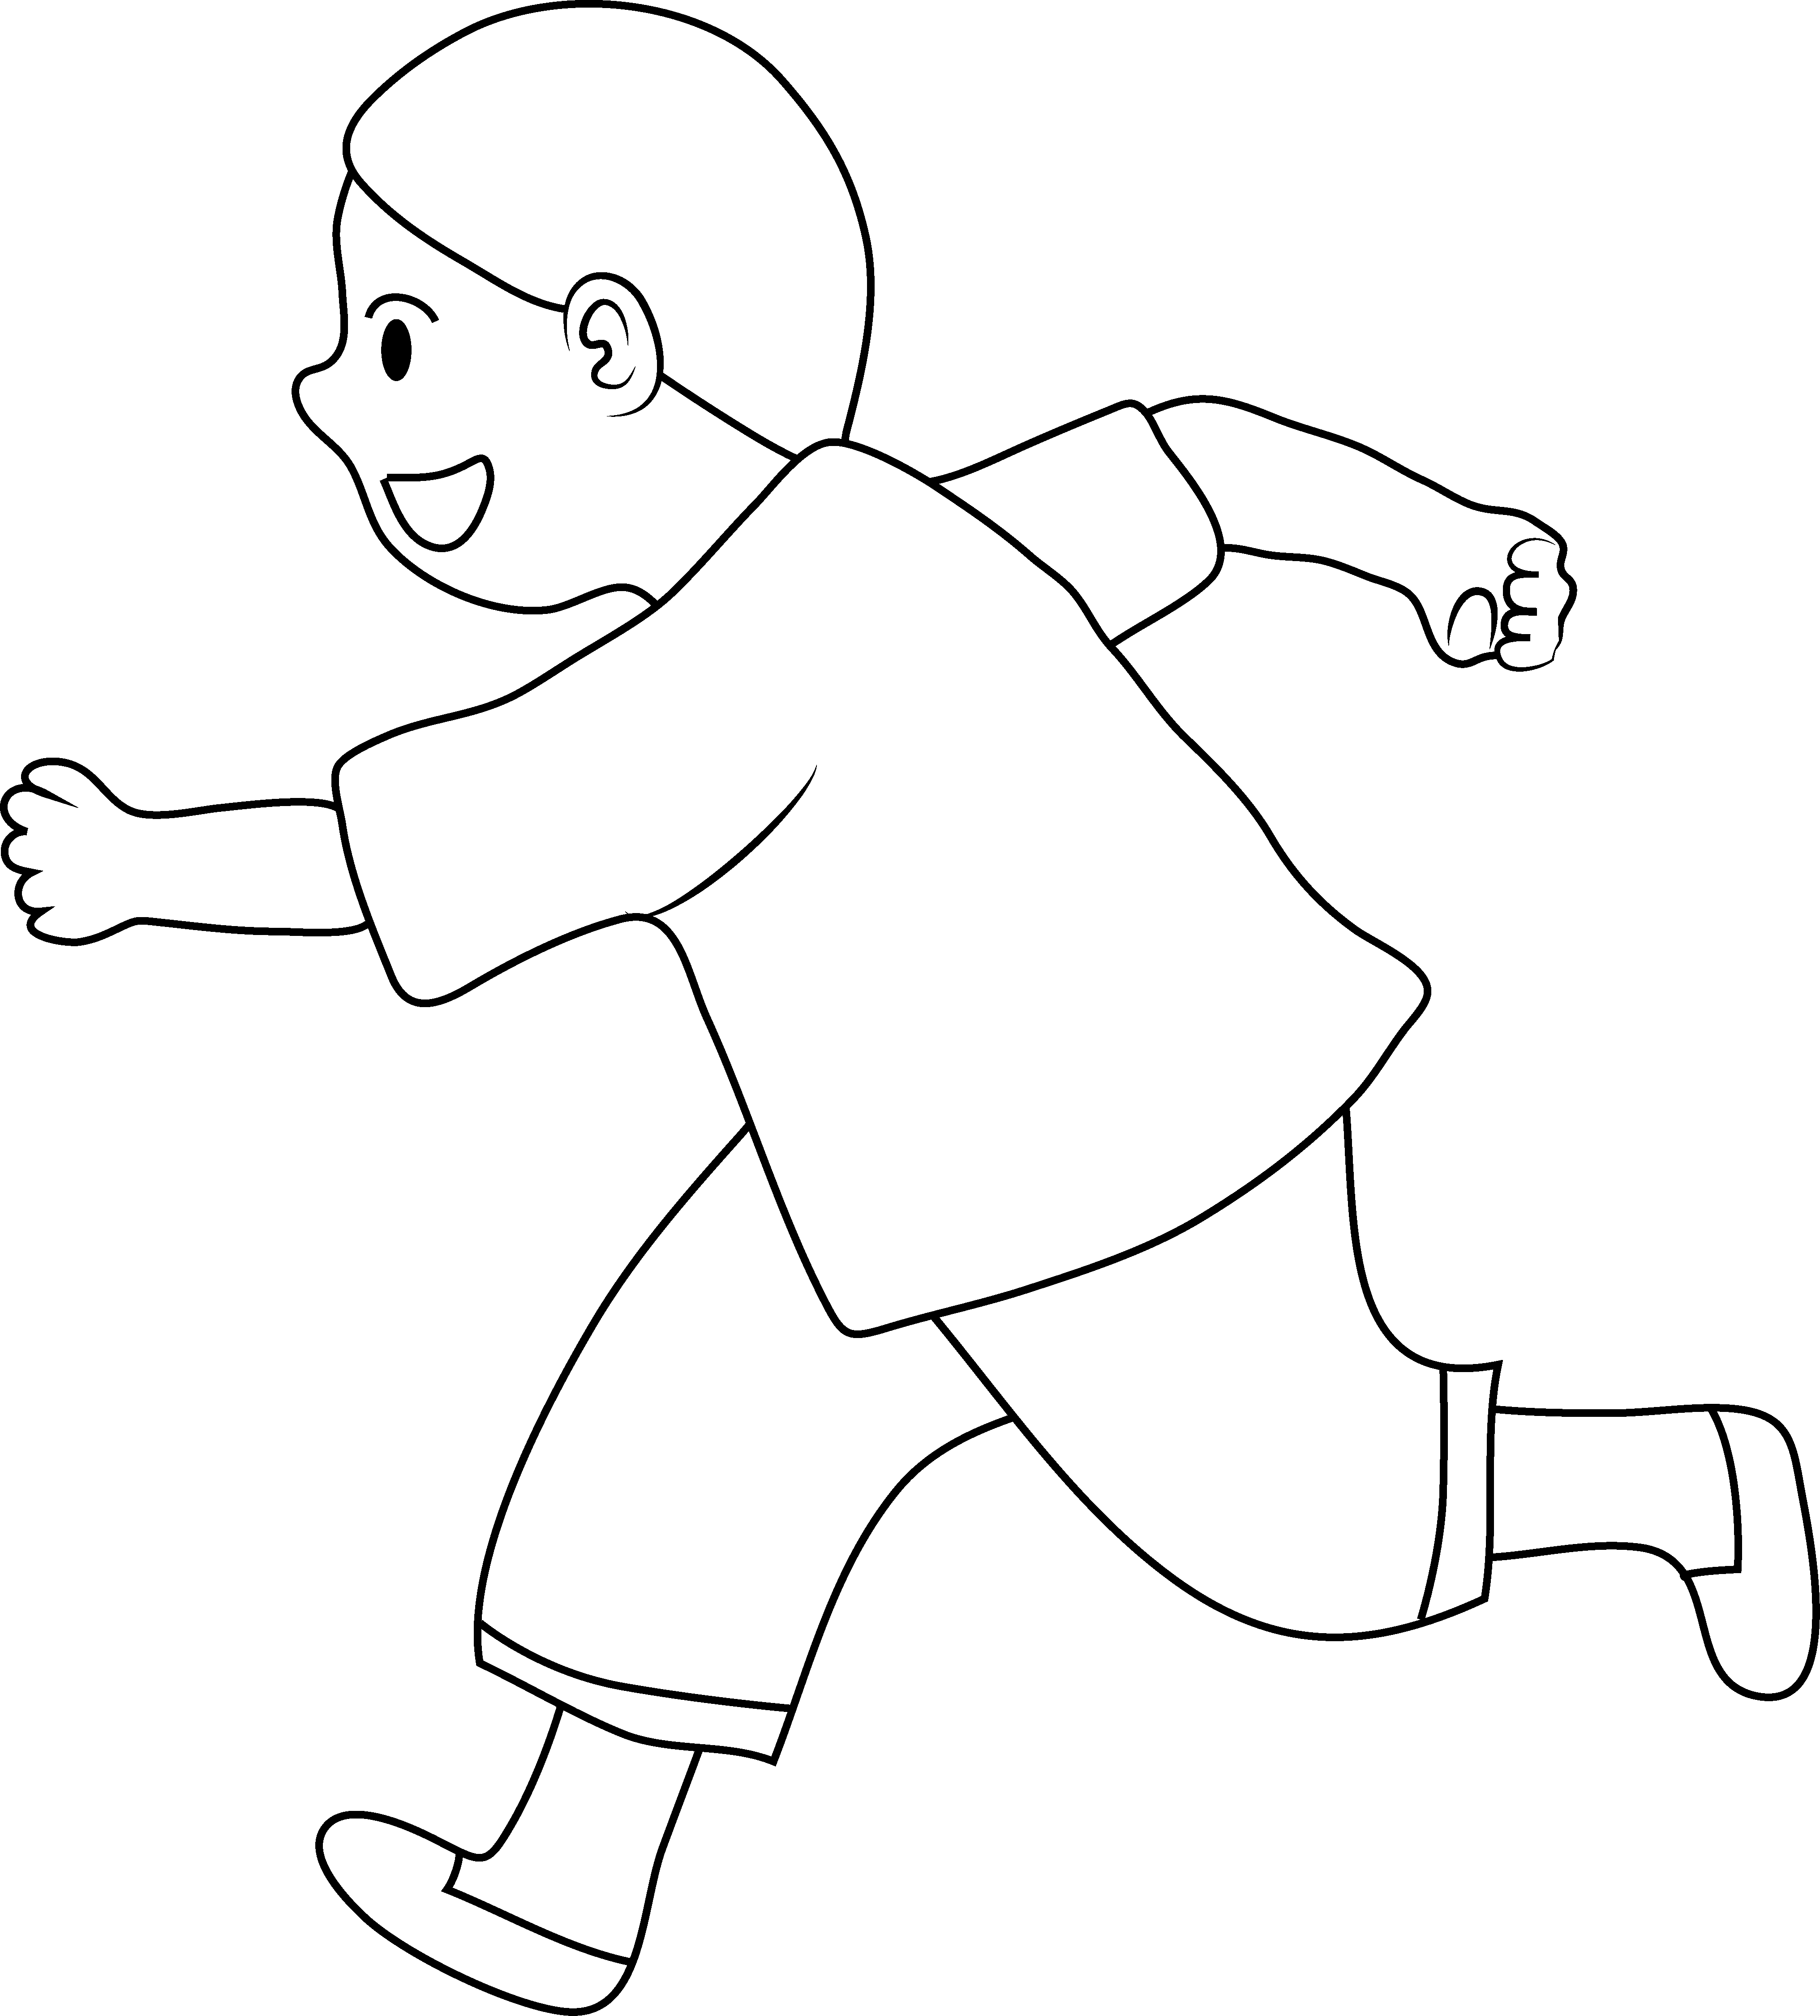 School playground clipart black and white svg freeuse library Free Pictures Of Black Kids, Download Free Clip Art, Free Clip Art ... svg freeuse library